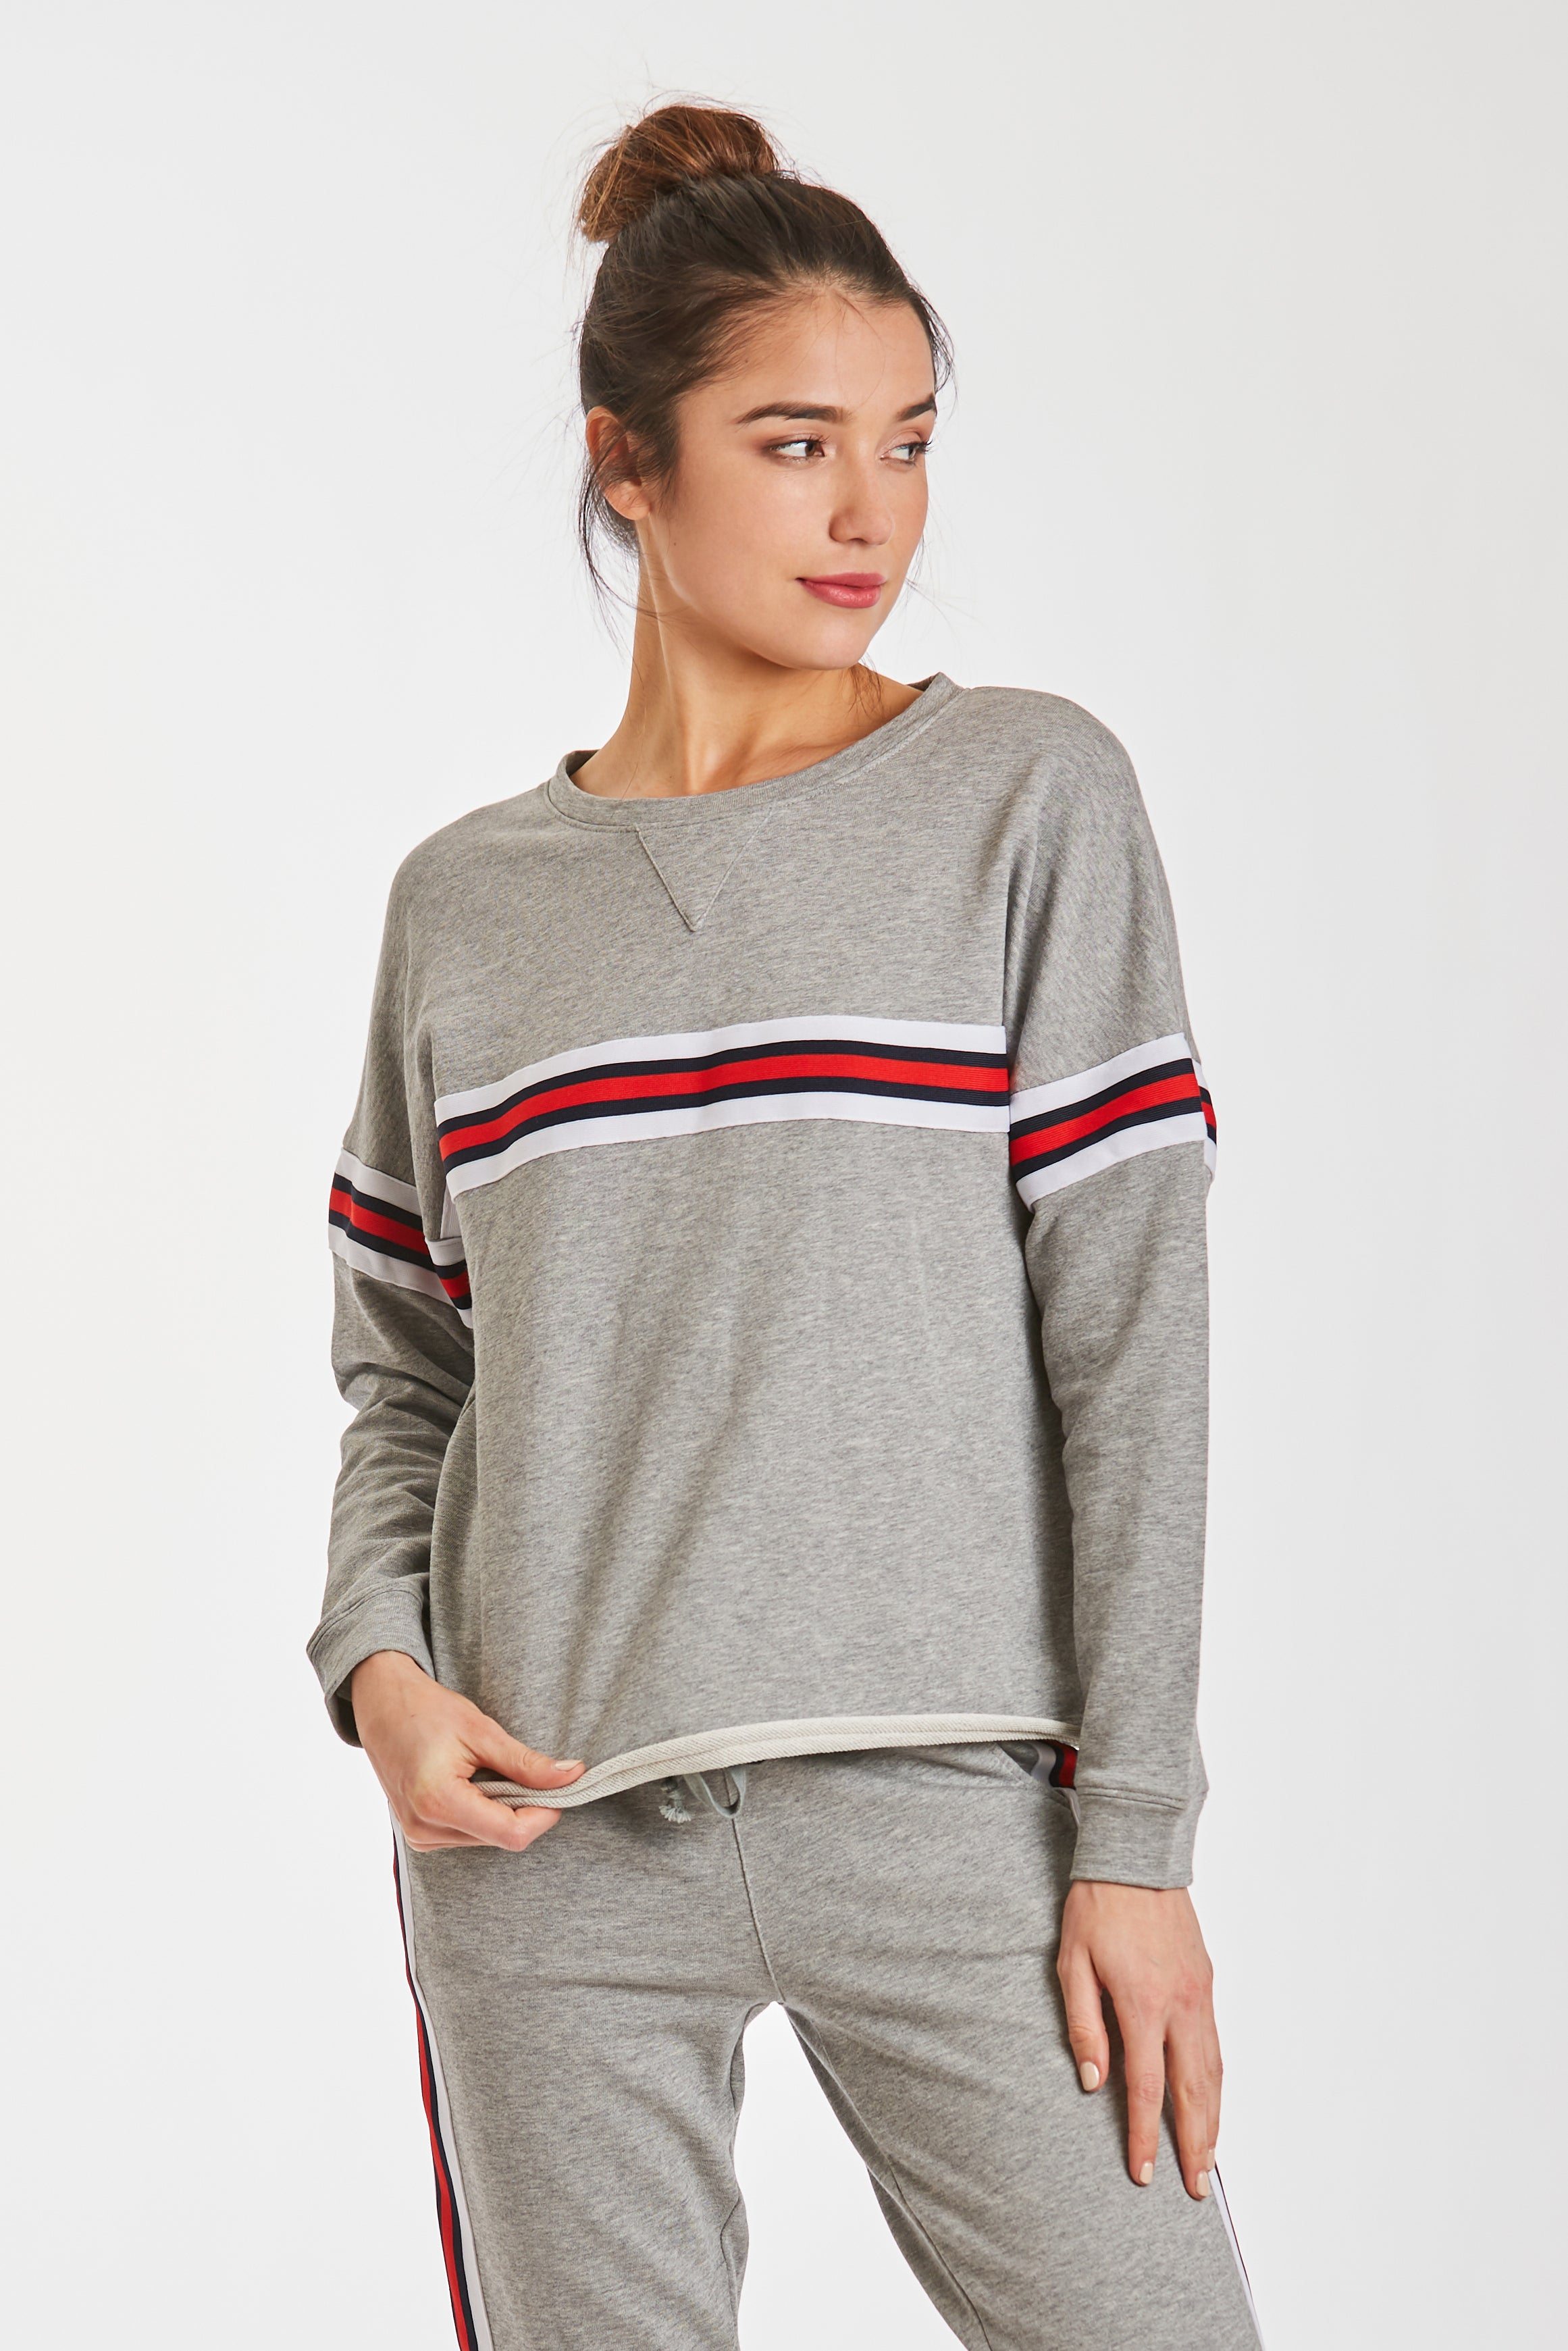 TATUM ATHLETIC STRIPE SWTSHRT